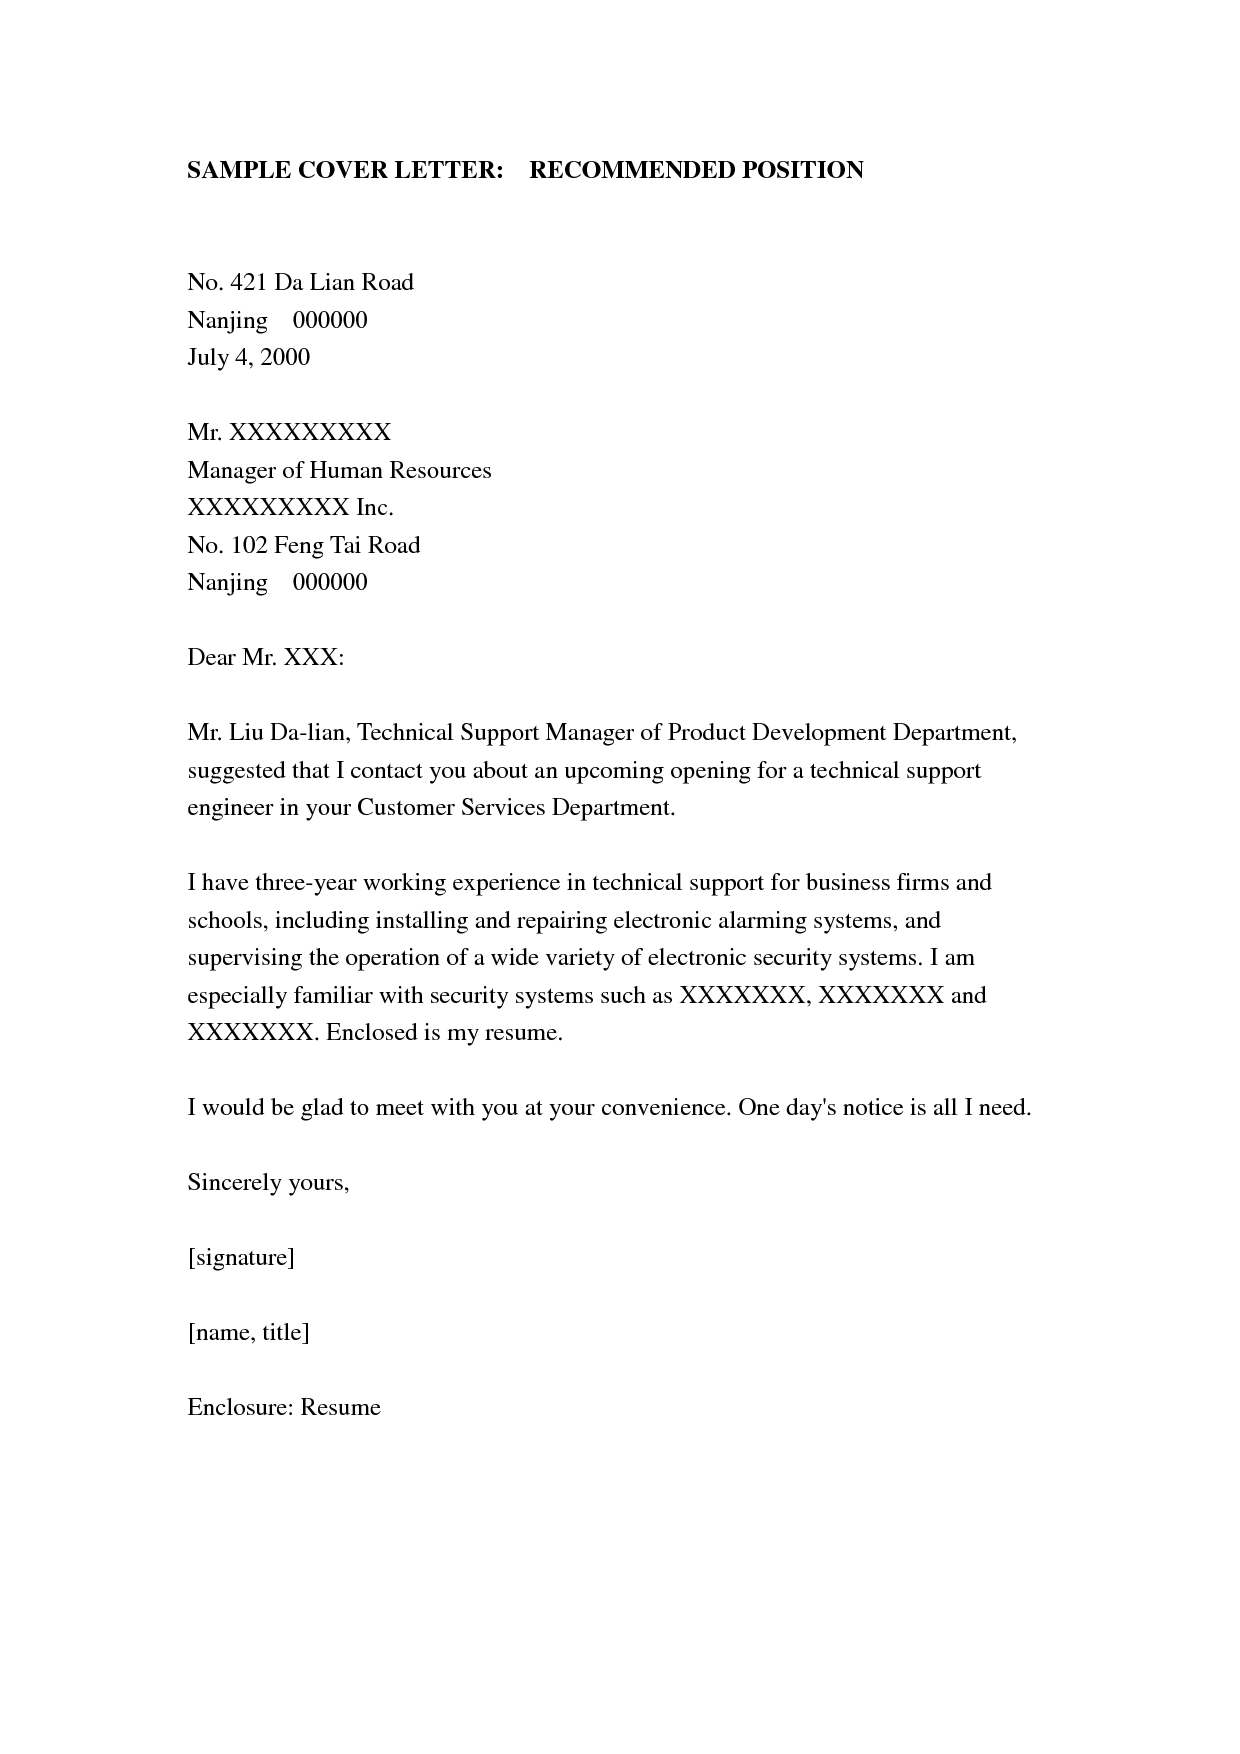 letter sample for odesk jobcover letter samples for jobs cover letter sample